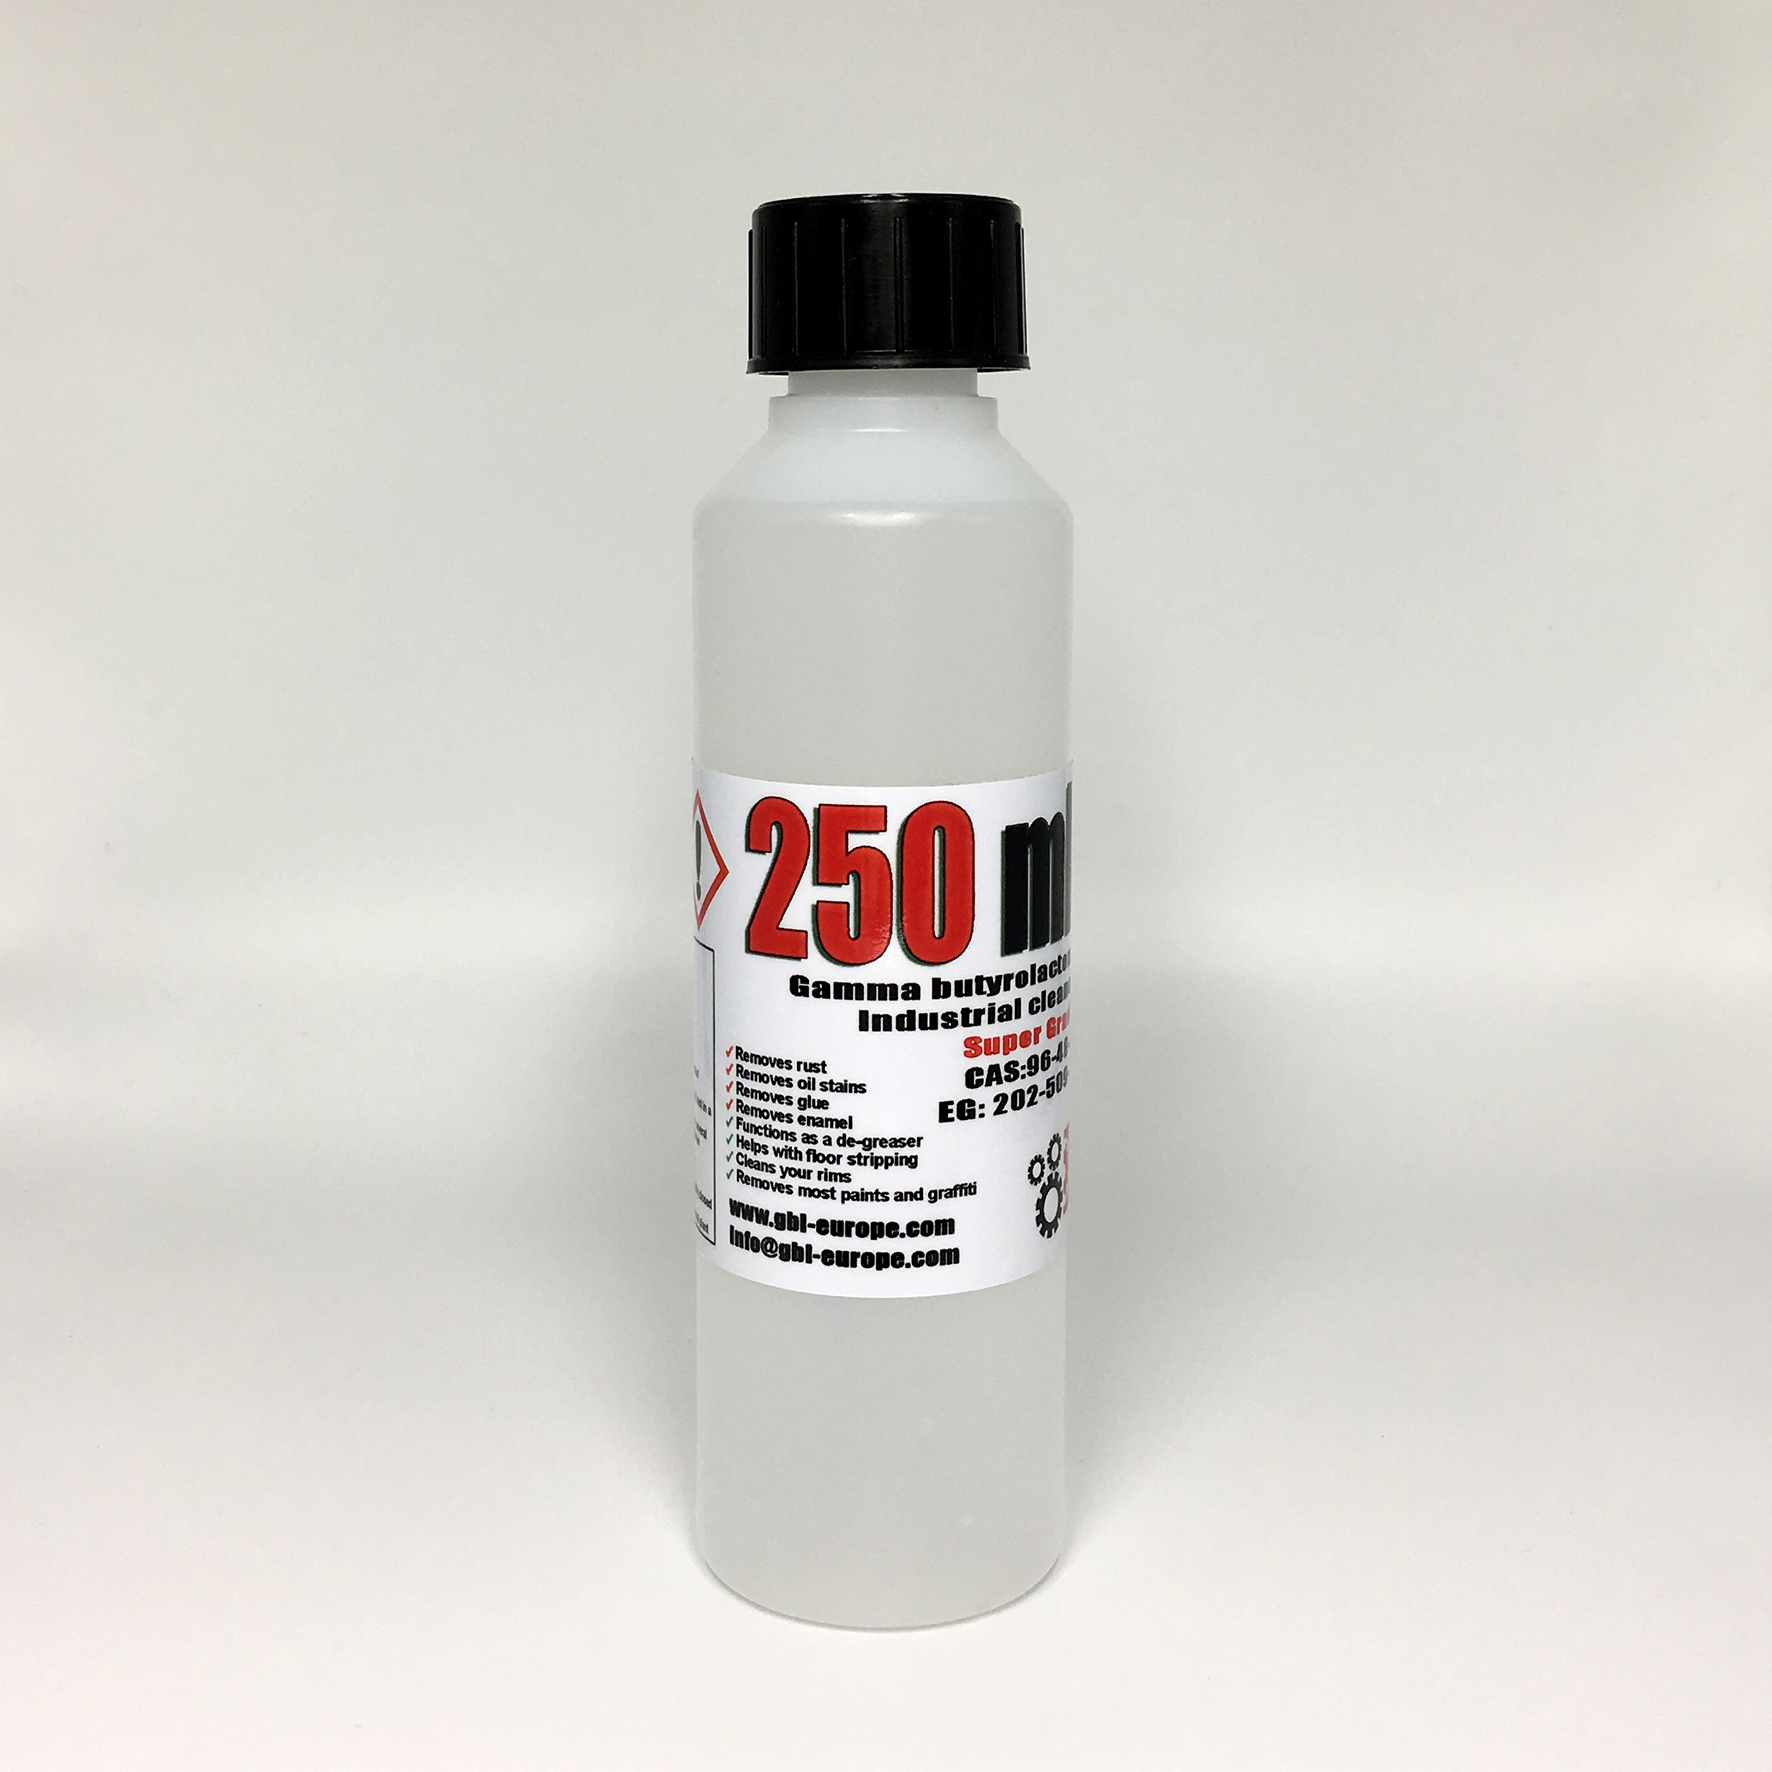 Industrial Cleaner 250 ml Super Grade Quality 00180 HS Code 29322020